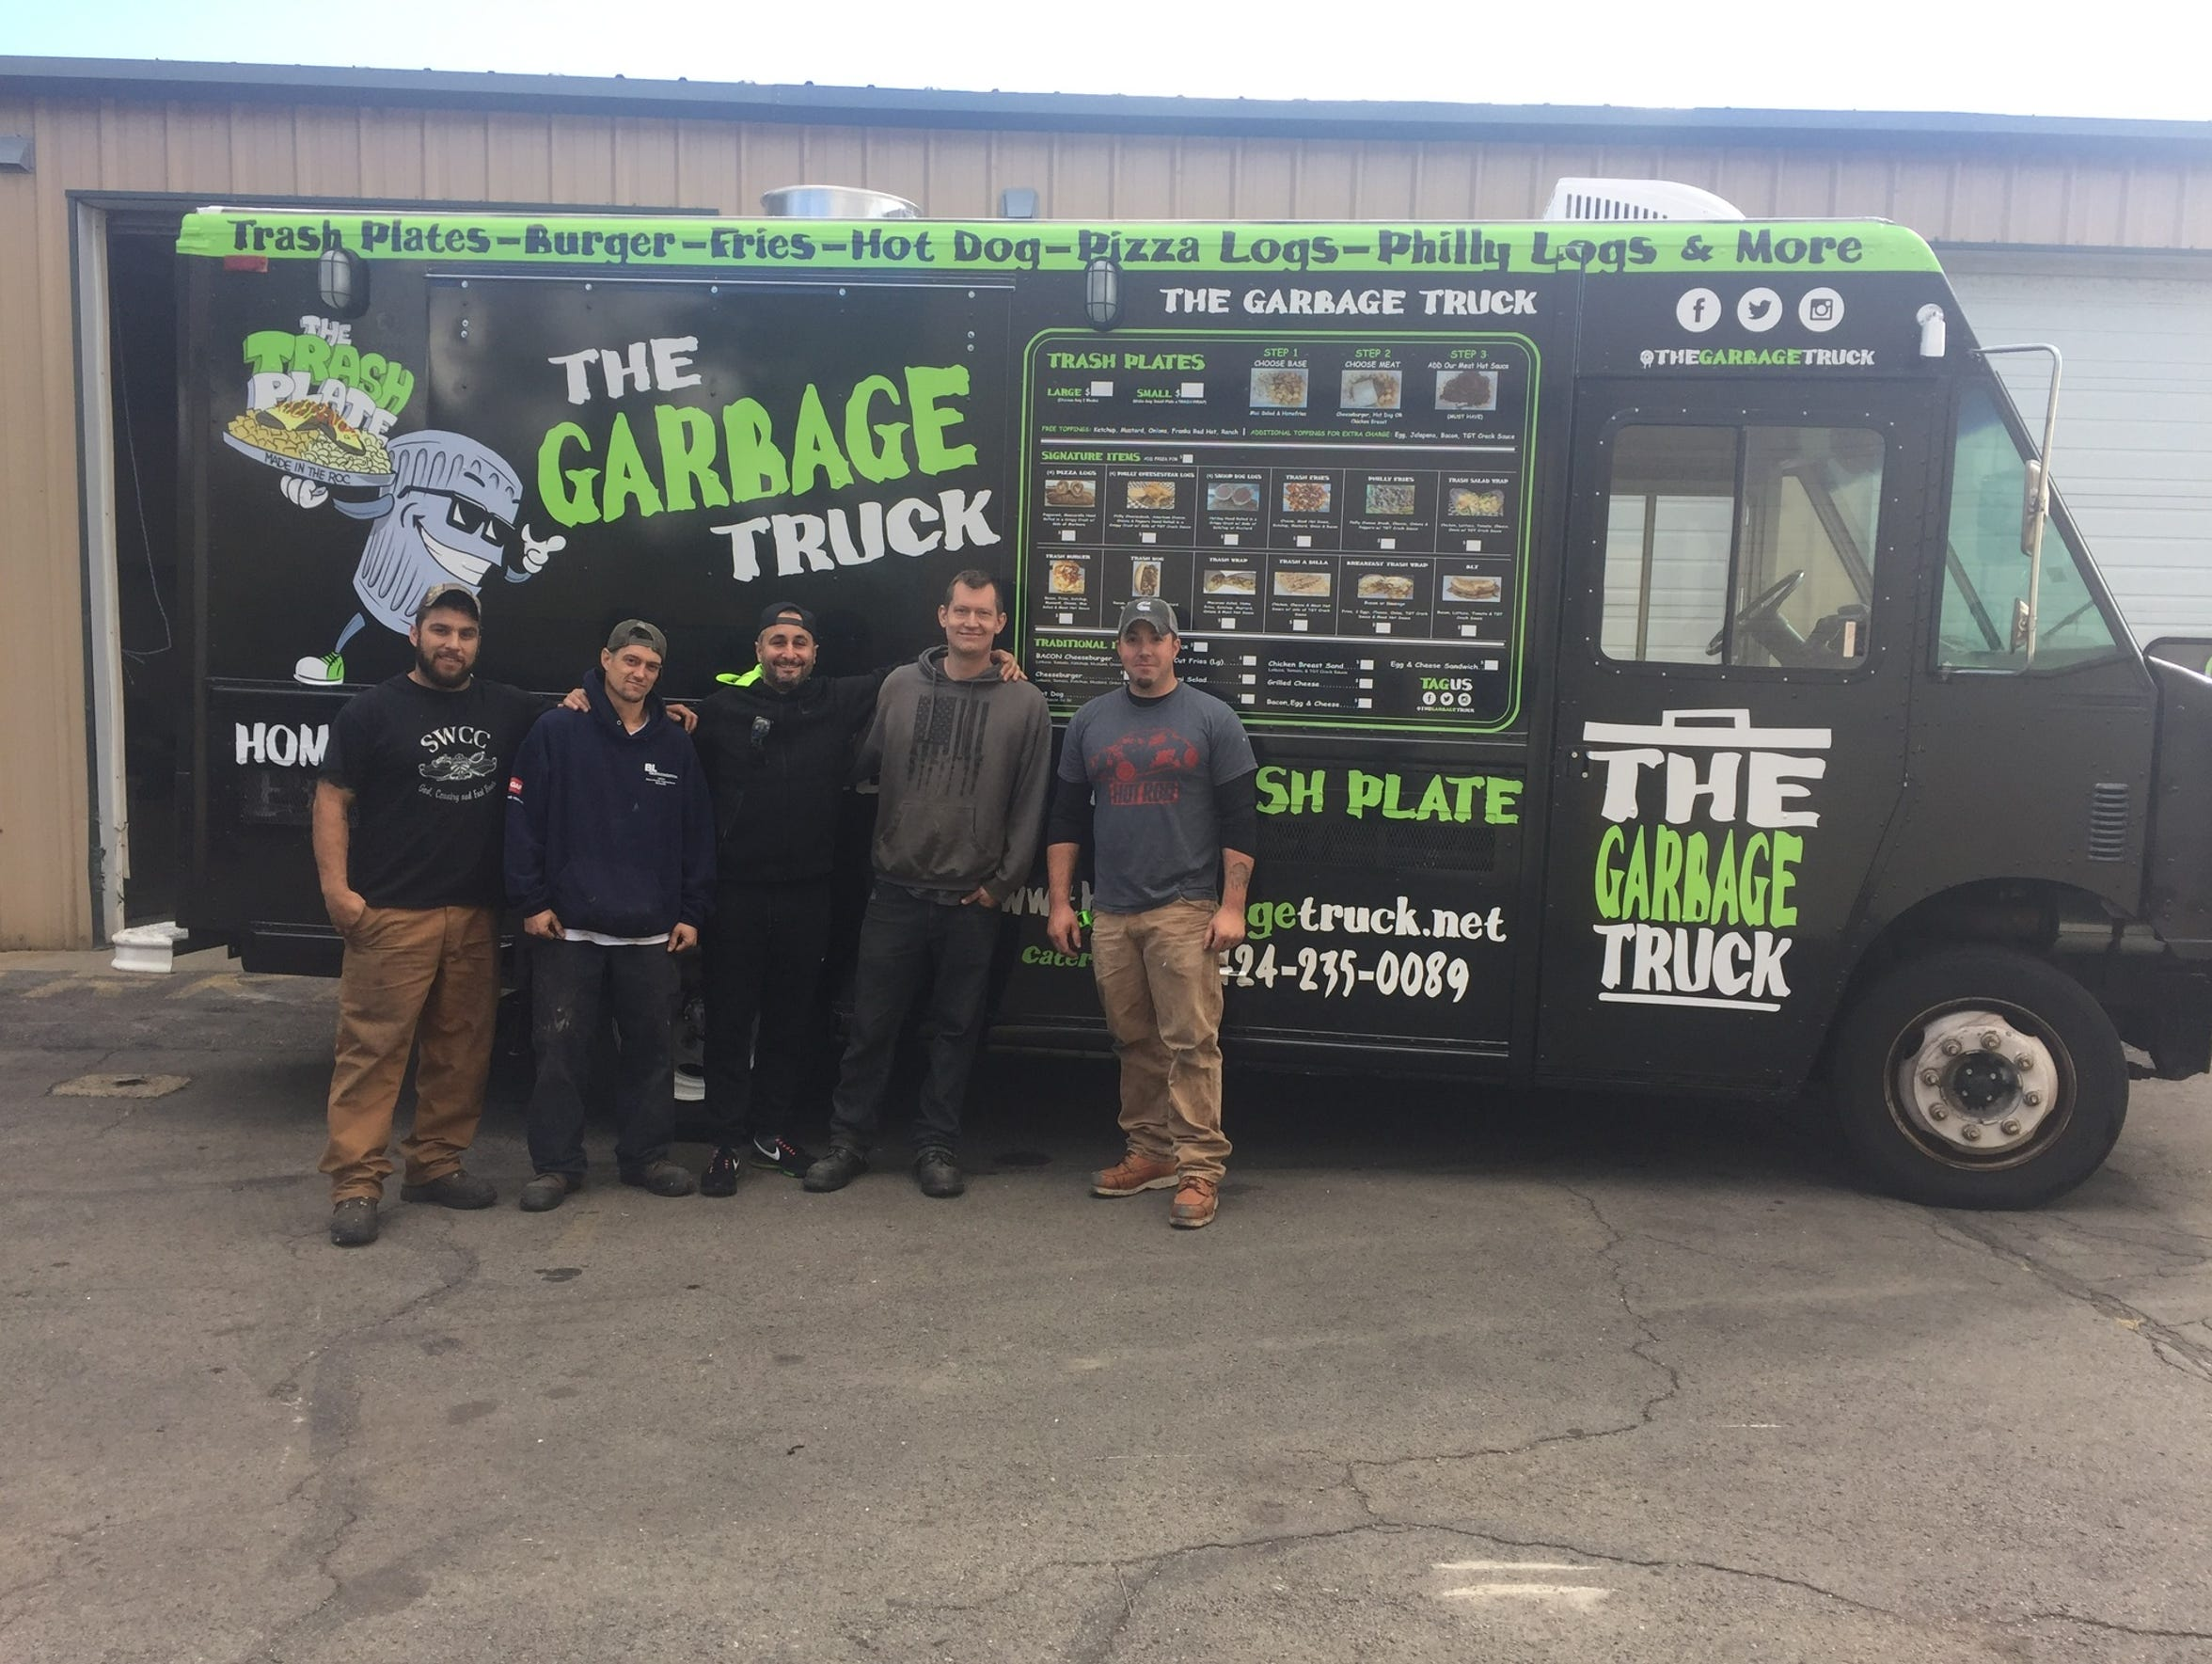 Joe LoPresti, center, had his second food truck completed